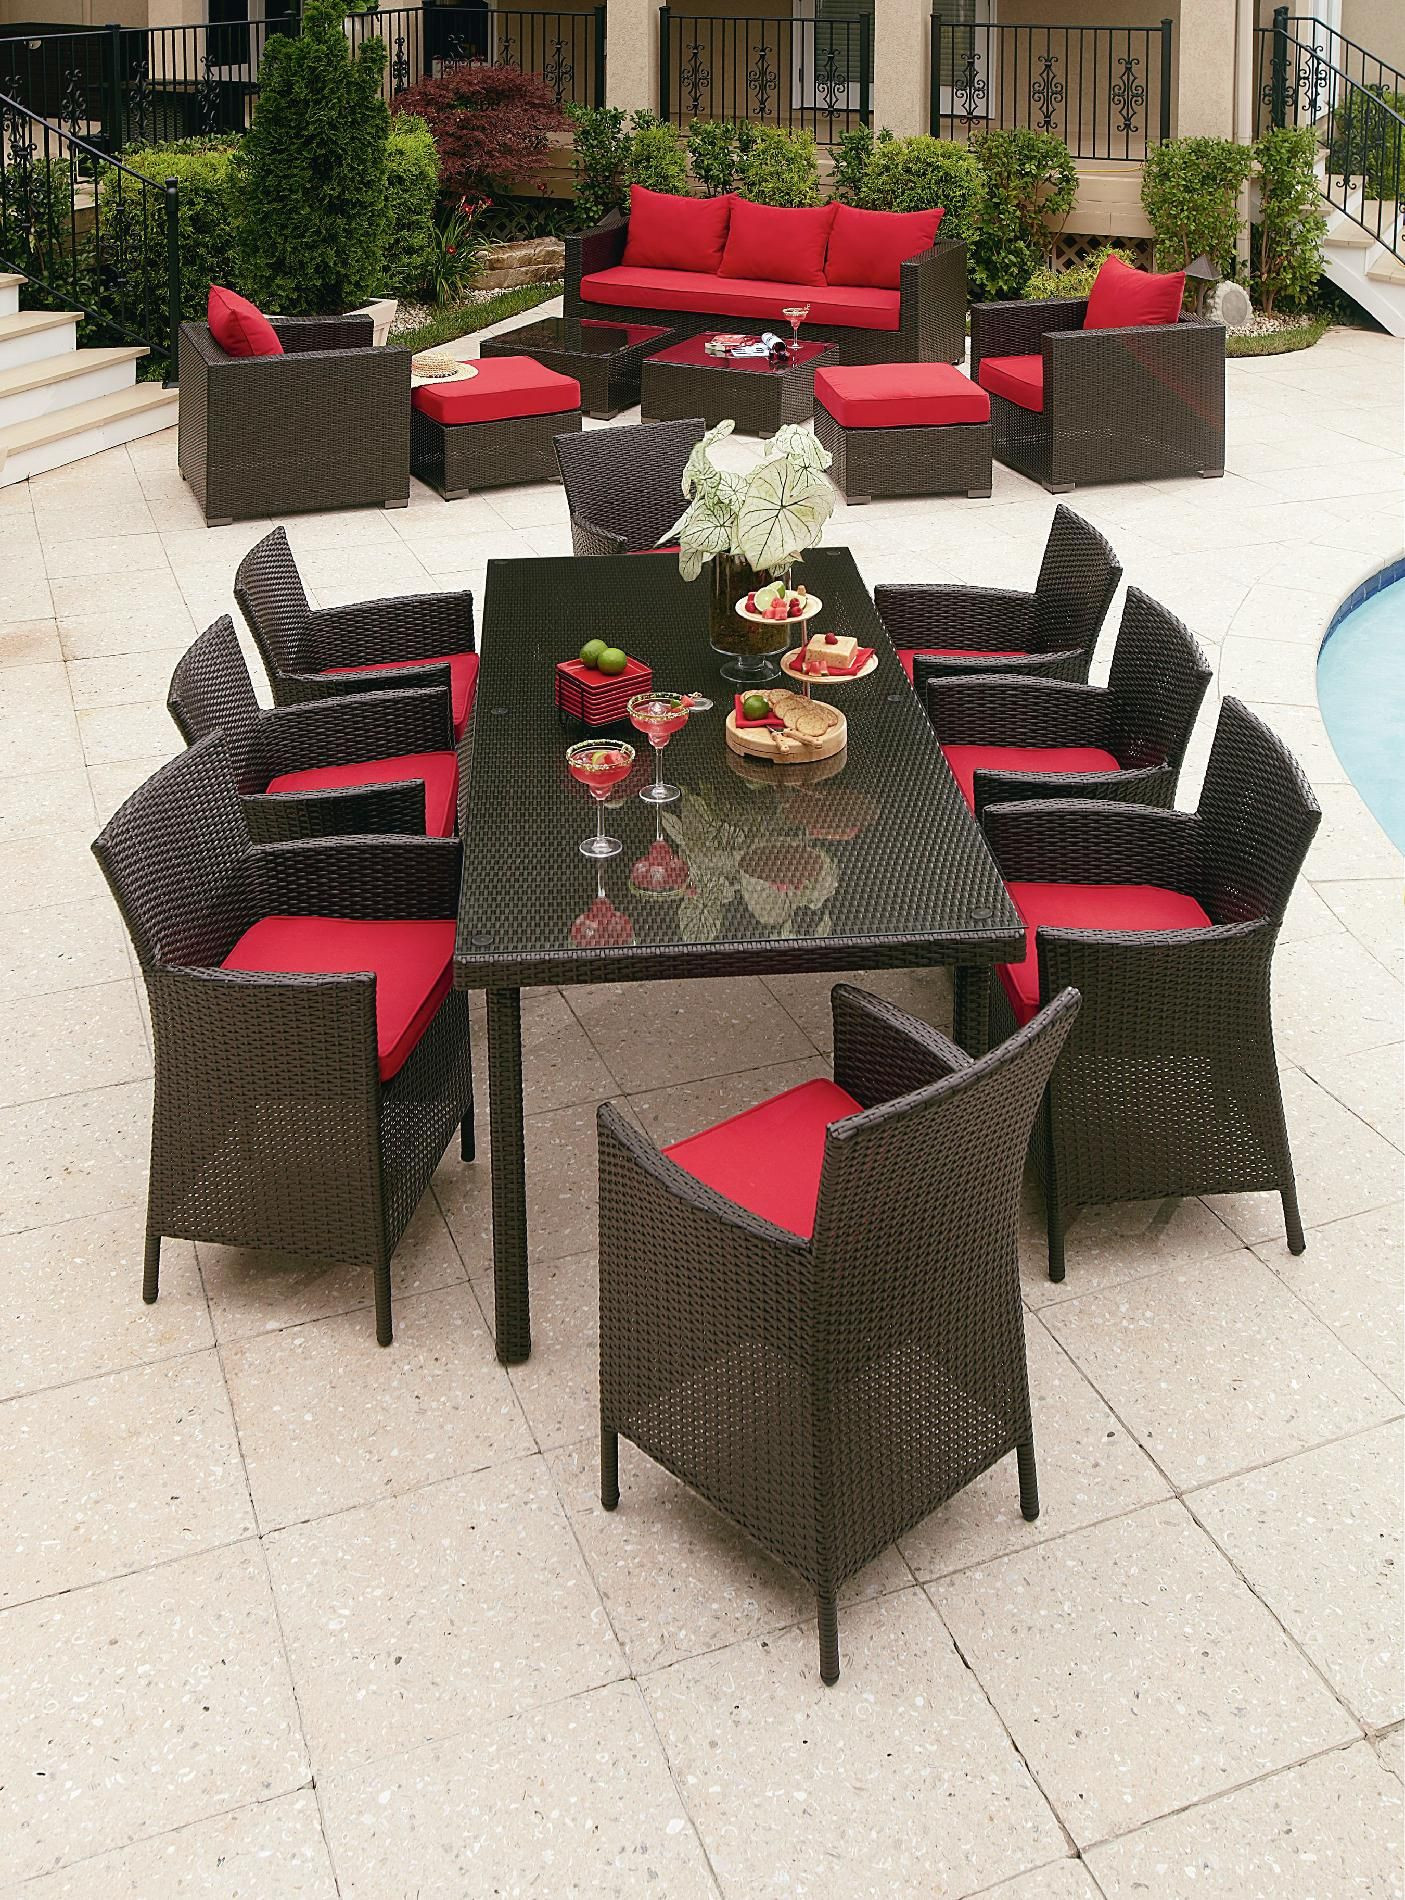 Best ideas about Patio Furniture Sets . Save or Pin Grand Resort Osborn 9 Piece Rectangle Dining Set Featuring Now.